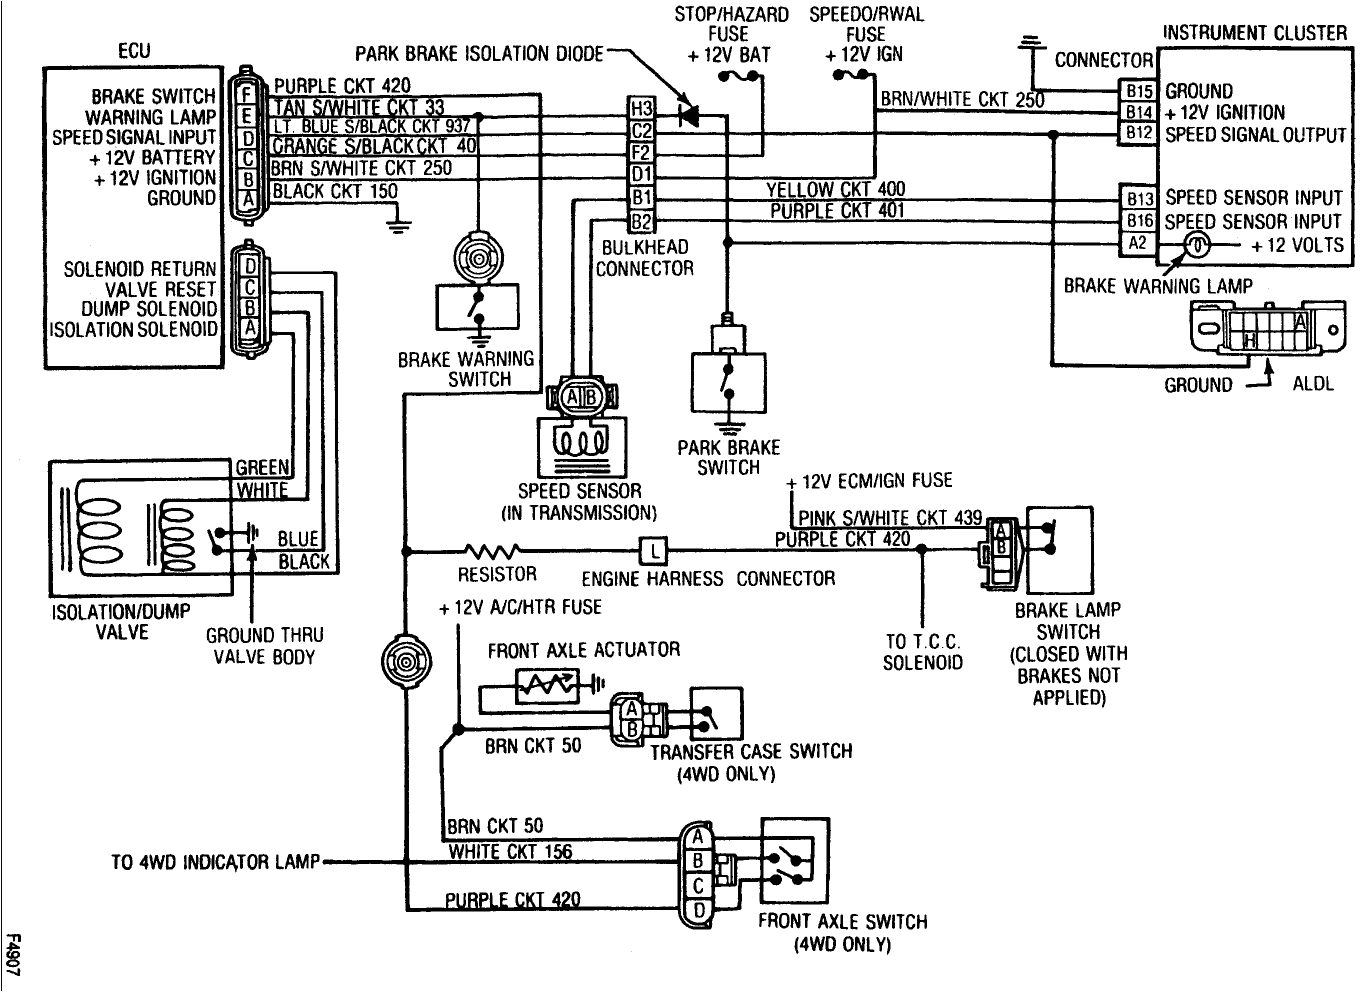 1990 chevy c1500 wiring harness wiring diagram today 88 c1500 wiring diagram 1990 chevy c1500 wiring